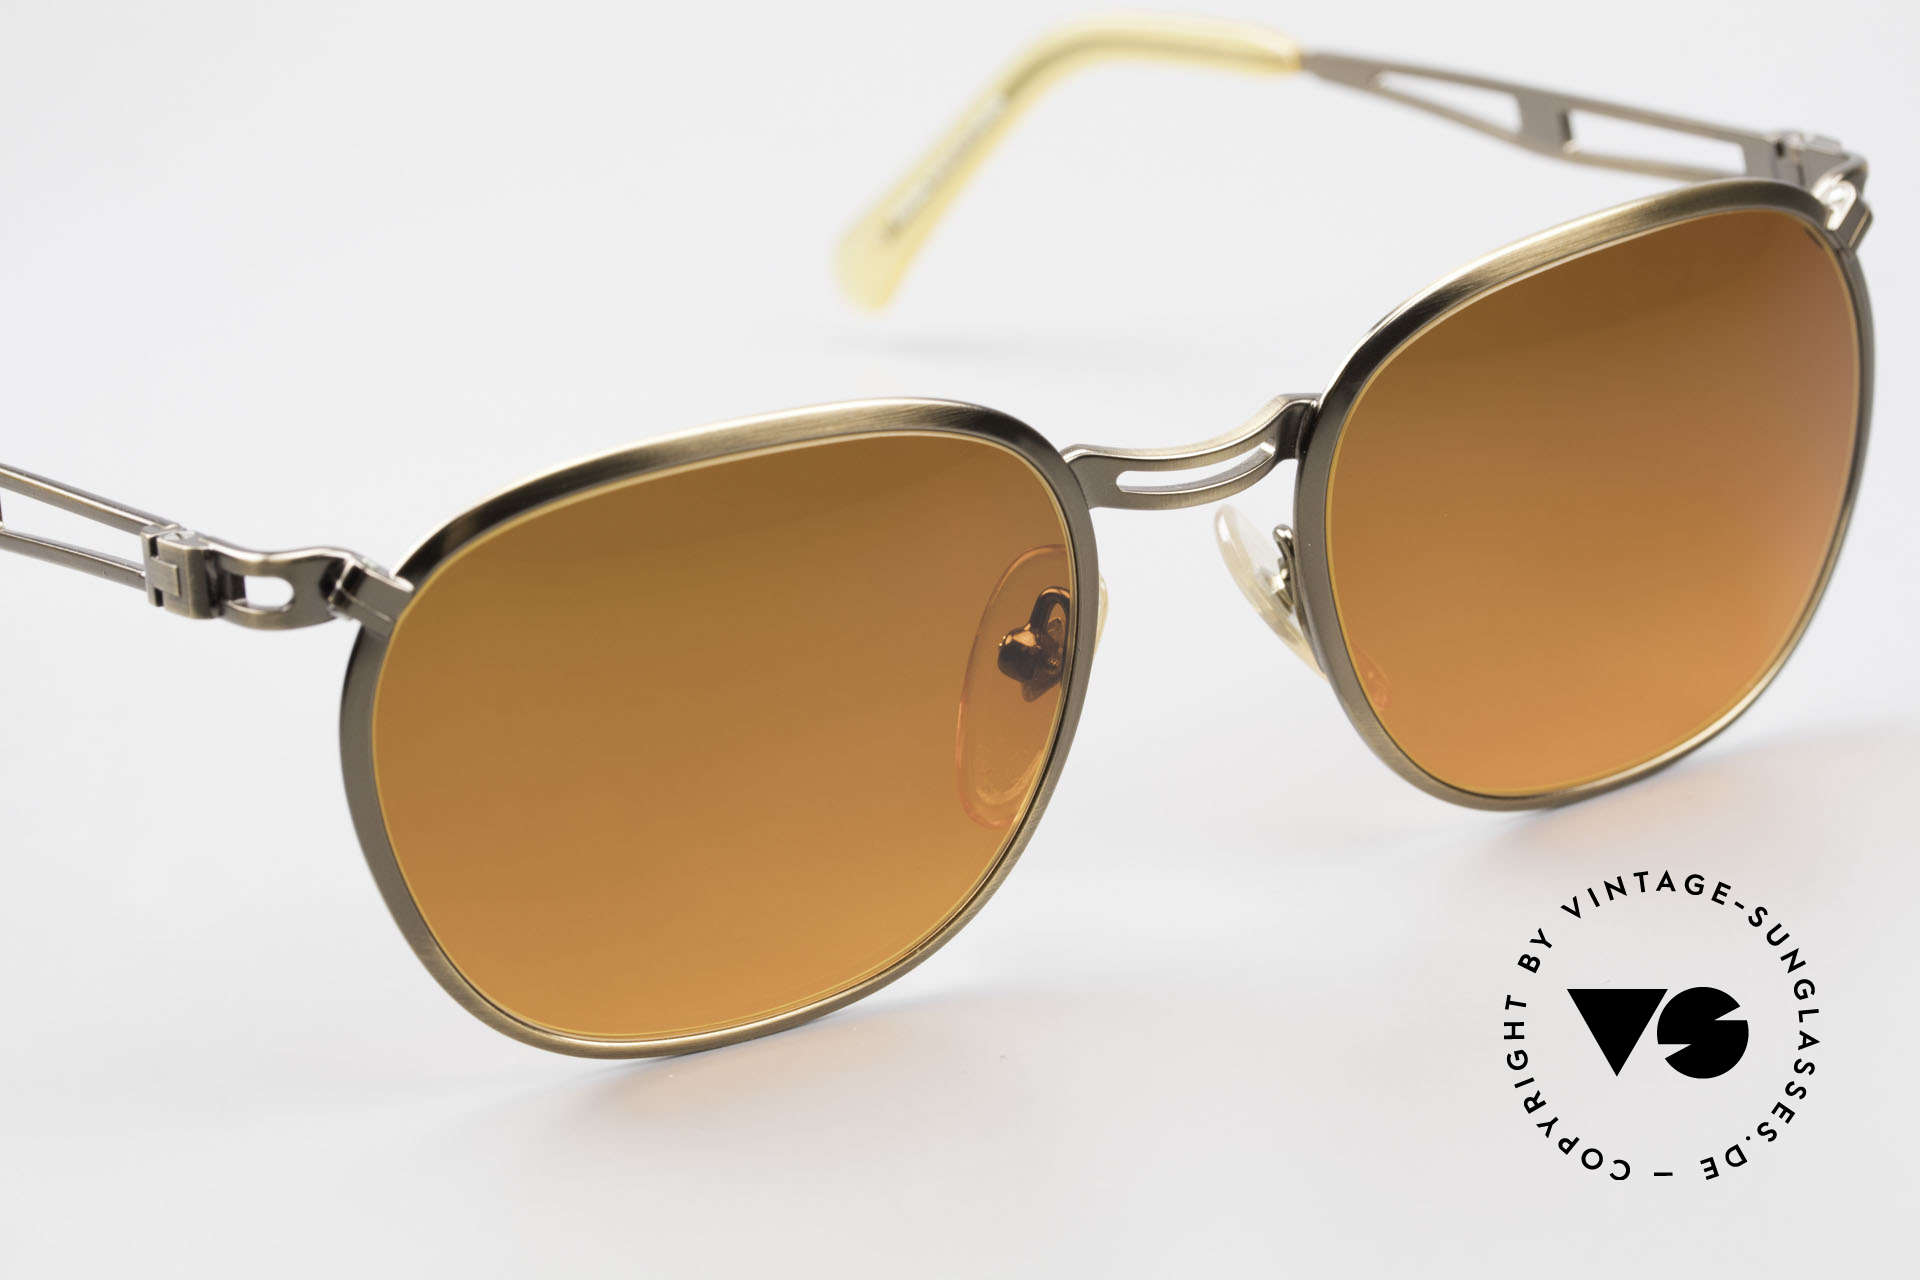 Jean Paul Gaultier 56-2177 Sunset Lenses Orange Gradient, NO RETRO fashion, but a 25 years old ORIGINAL!, Made for Men and Women